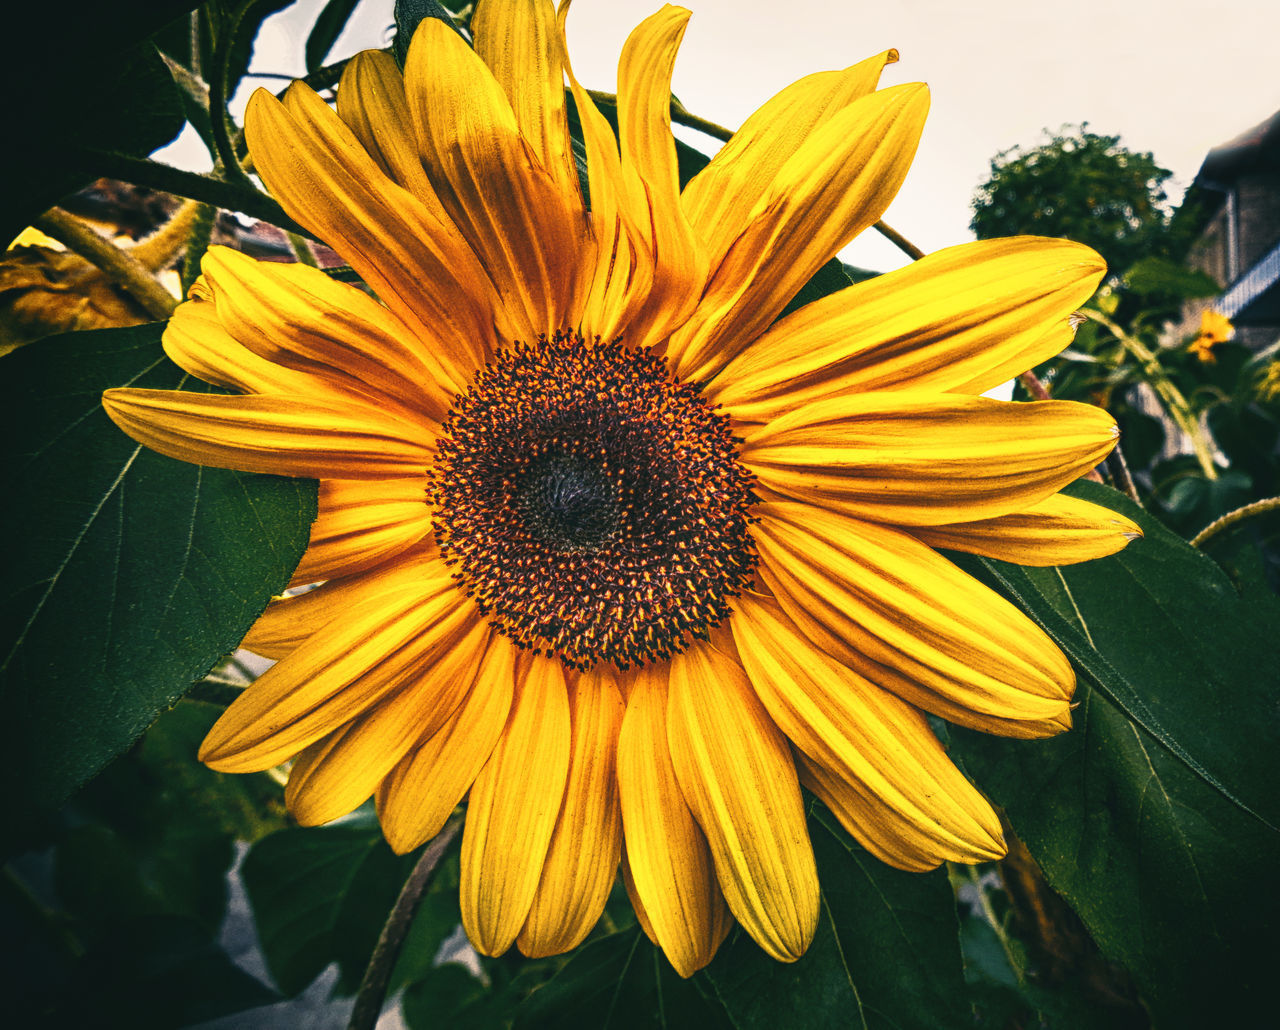 flowering plant, flower, yellow, petal, flower head, vulnerability, inflorescence, fragility, freshness, beauty in nature, plant, growth, pollen, close-up, nature, day, no people, focus on foreground, botany, outdoors, sunflower, gazania